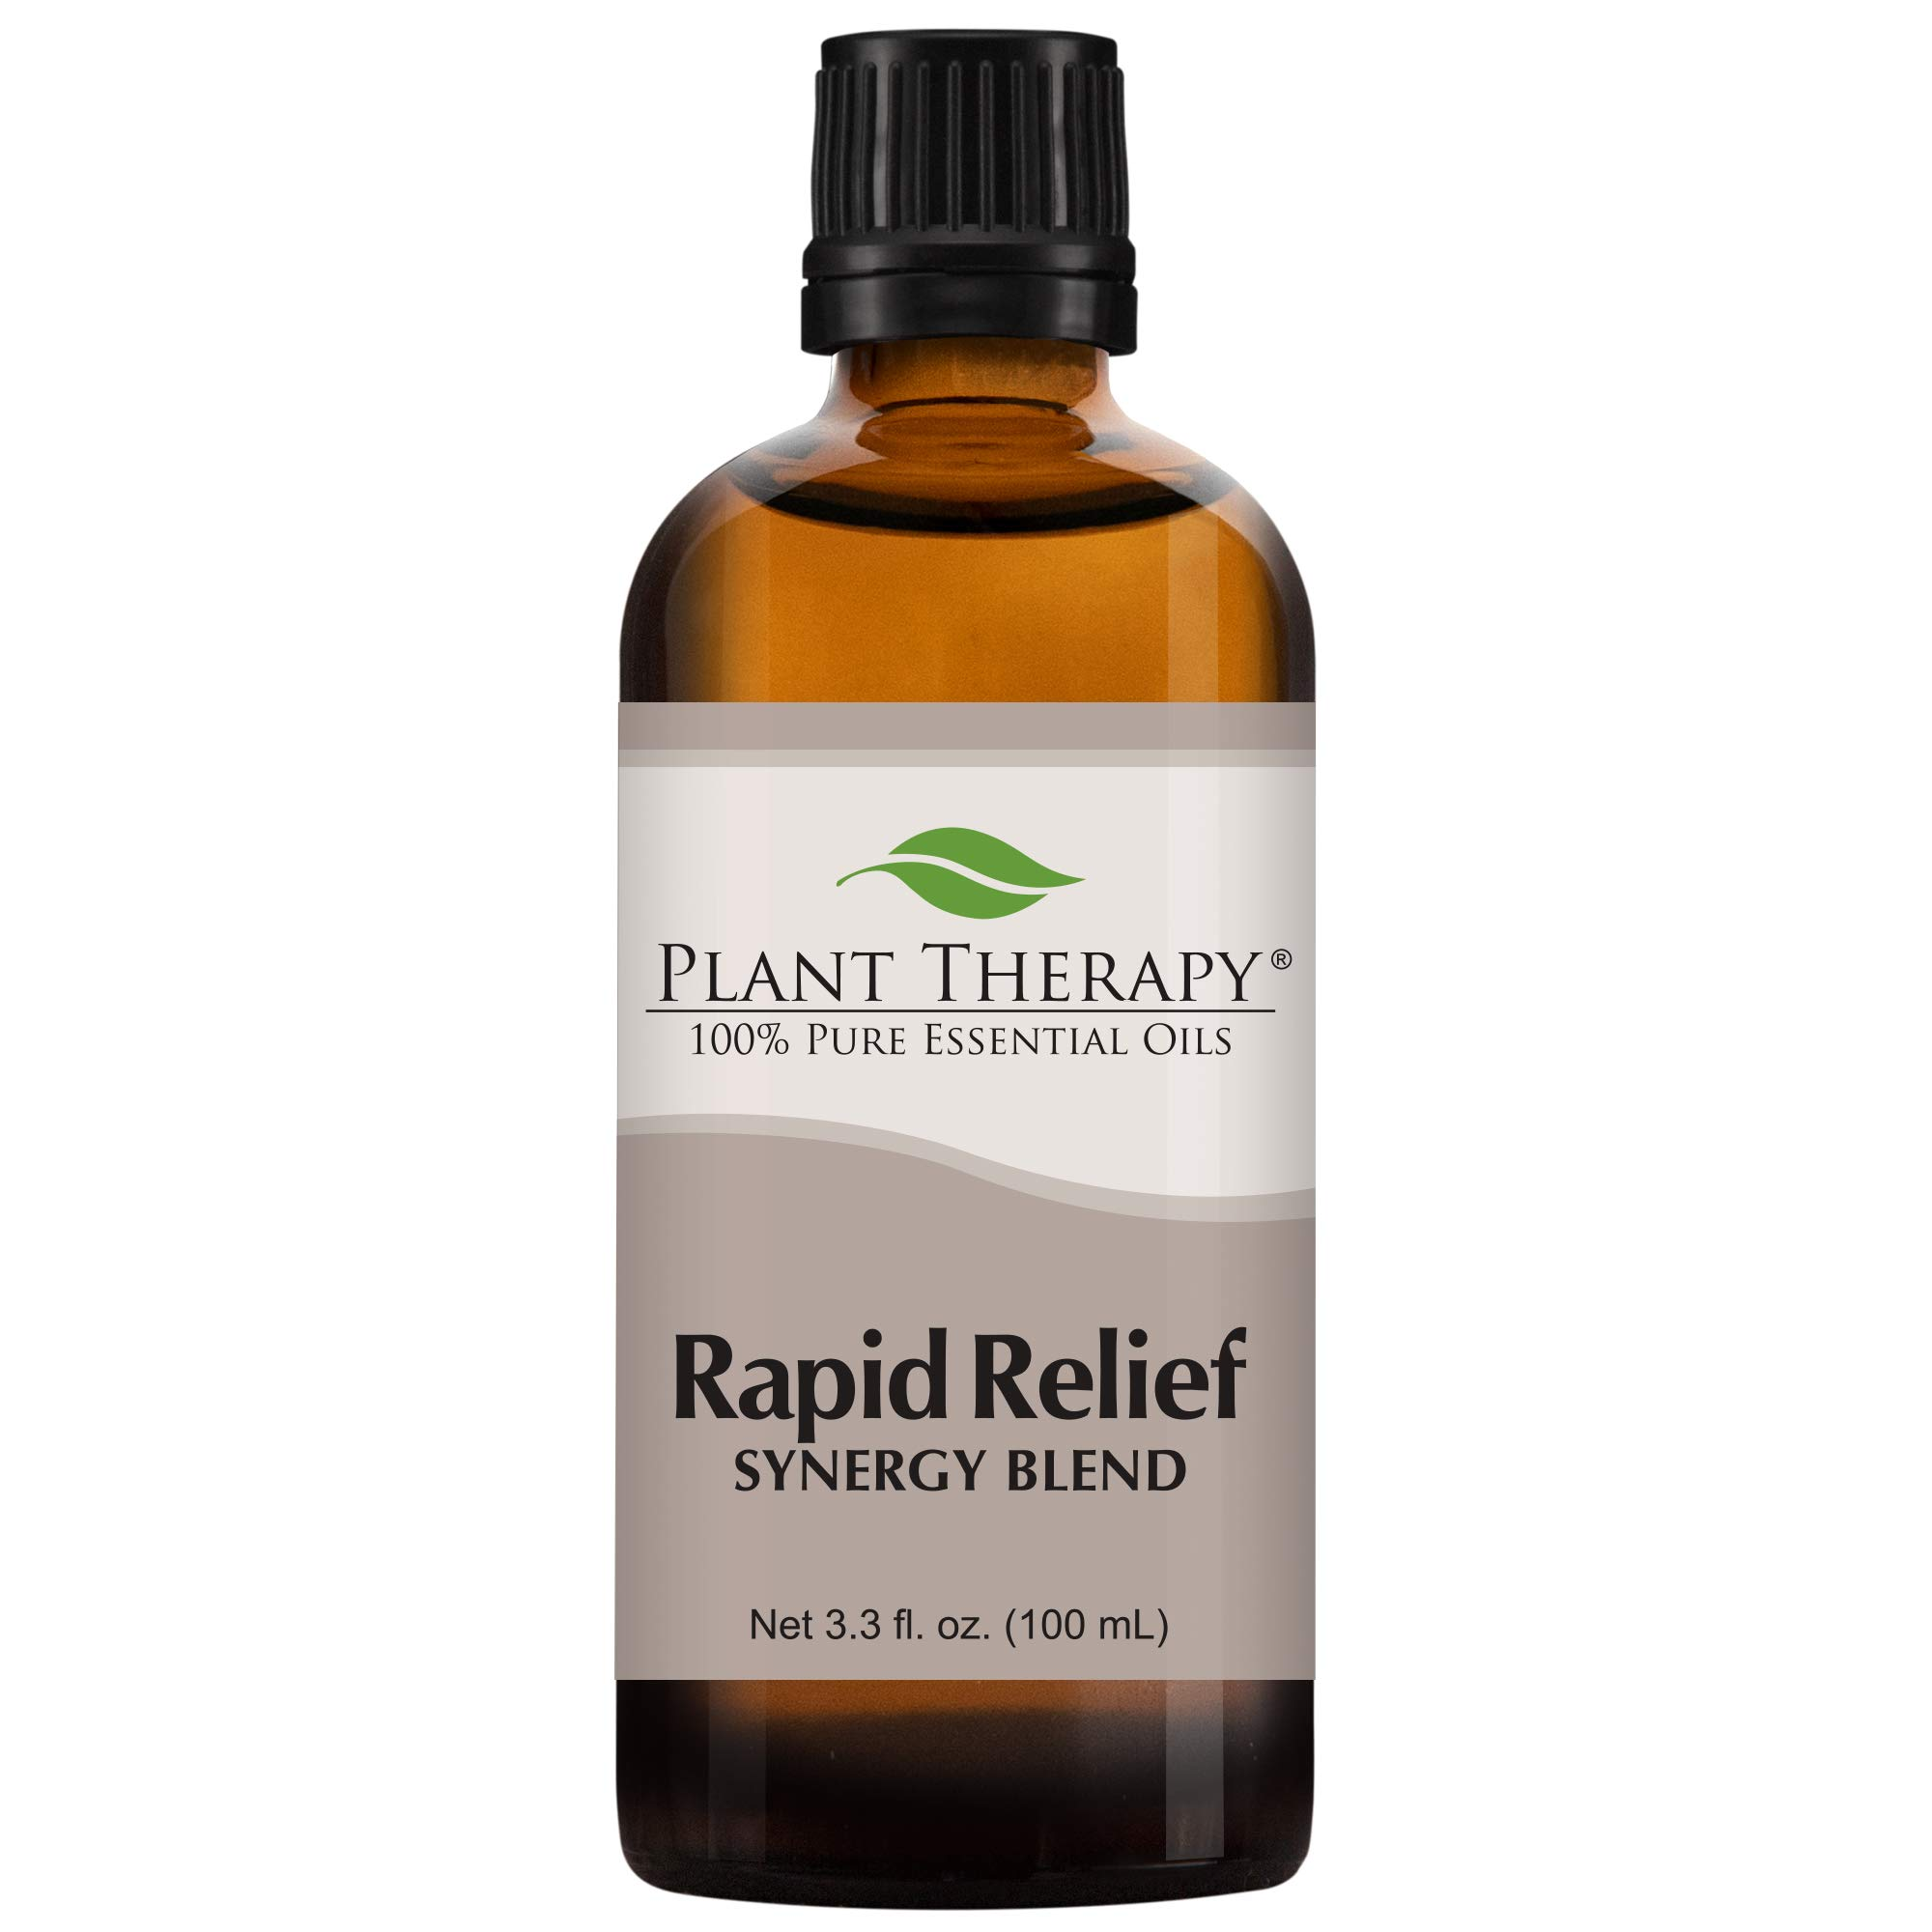 Plant Therapy Essential Oils Rapid Relief Synergy - Pain and Soreness Blend 100% Pure, Undiluted, Natural Aromatherapy, Therapeutic Grade 100 mL (3.3 oz) by Plant Therapy